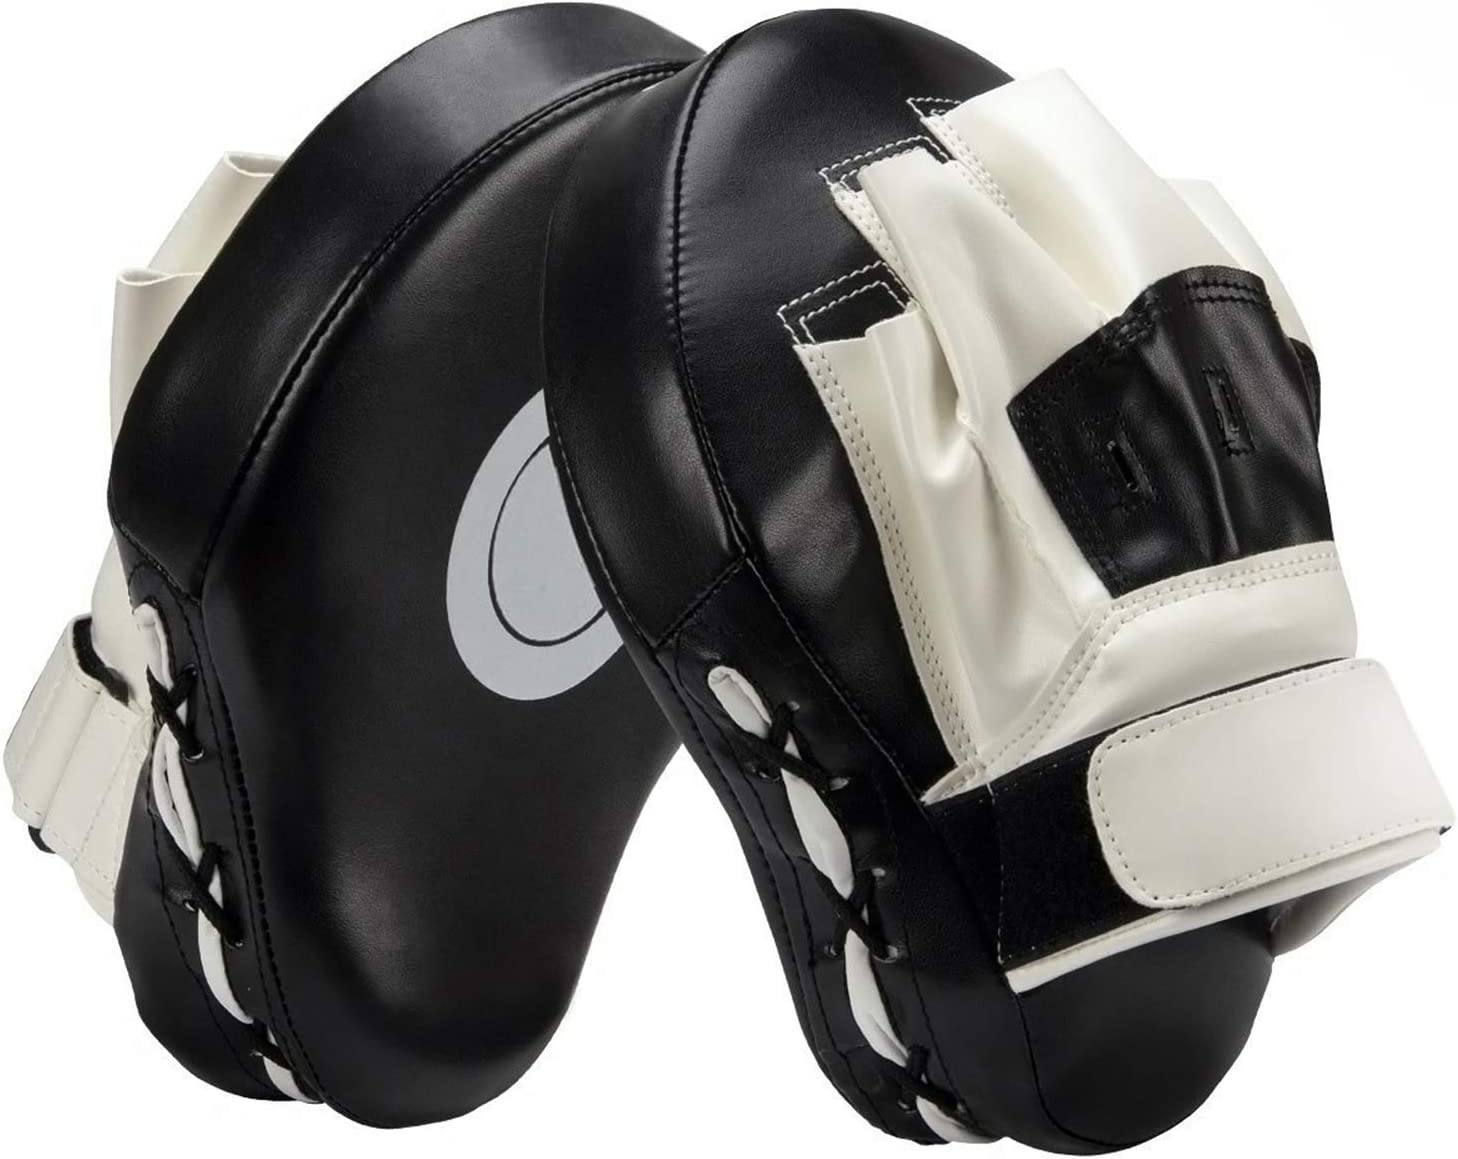 2020 Curved Boxing Focus Pad Set Hook and Jab Punch Training Sparring Bag Gloves